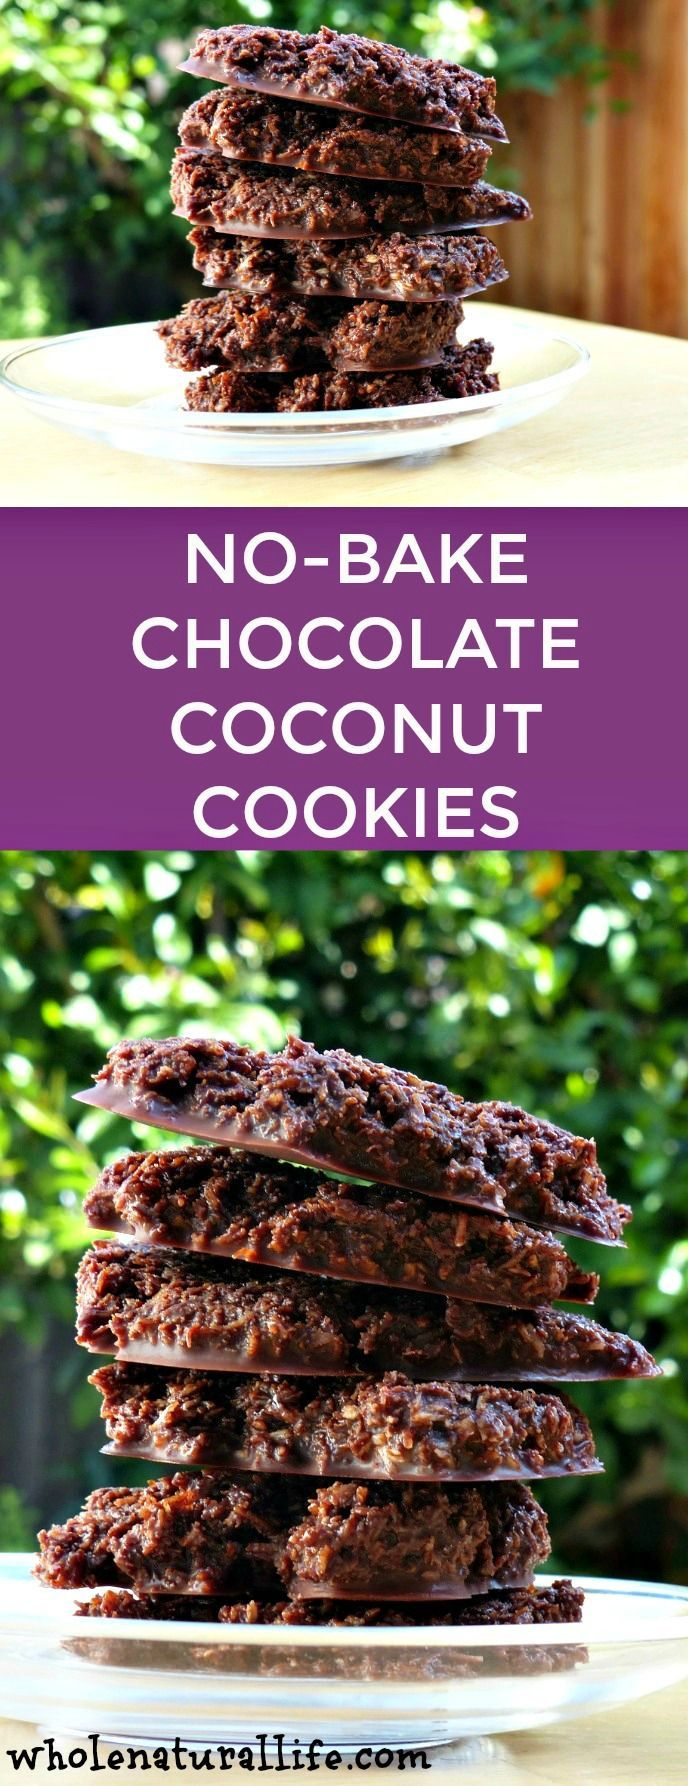 Gluten-free, Paleo, healthy, no-bake, chocolate, coconut cookies | 1/2 cup virgin coconut oil  1/2 cup cocoa powder 1/3 - 1/2 cup raw honey, depending on how sweet you want your cookies to be 2 teaspoons vanilla extract Couple dashes of salt 1 1/3 cups unsweetened shredded coconut